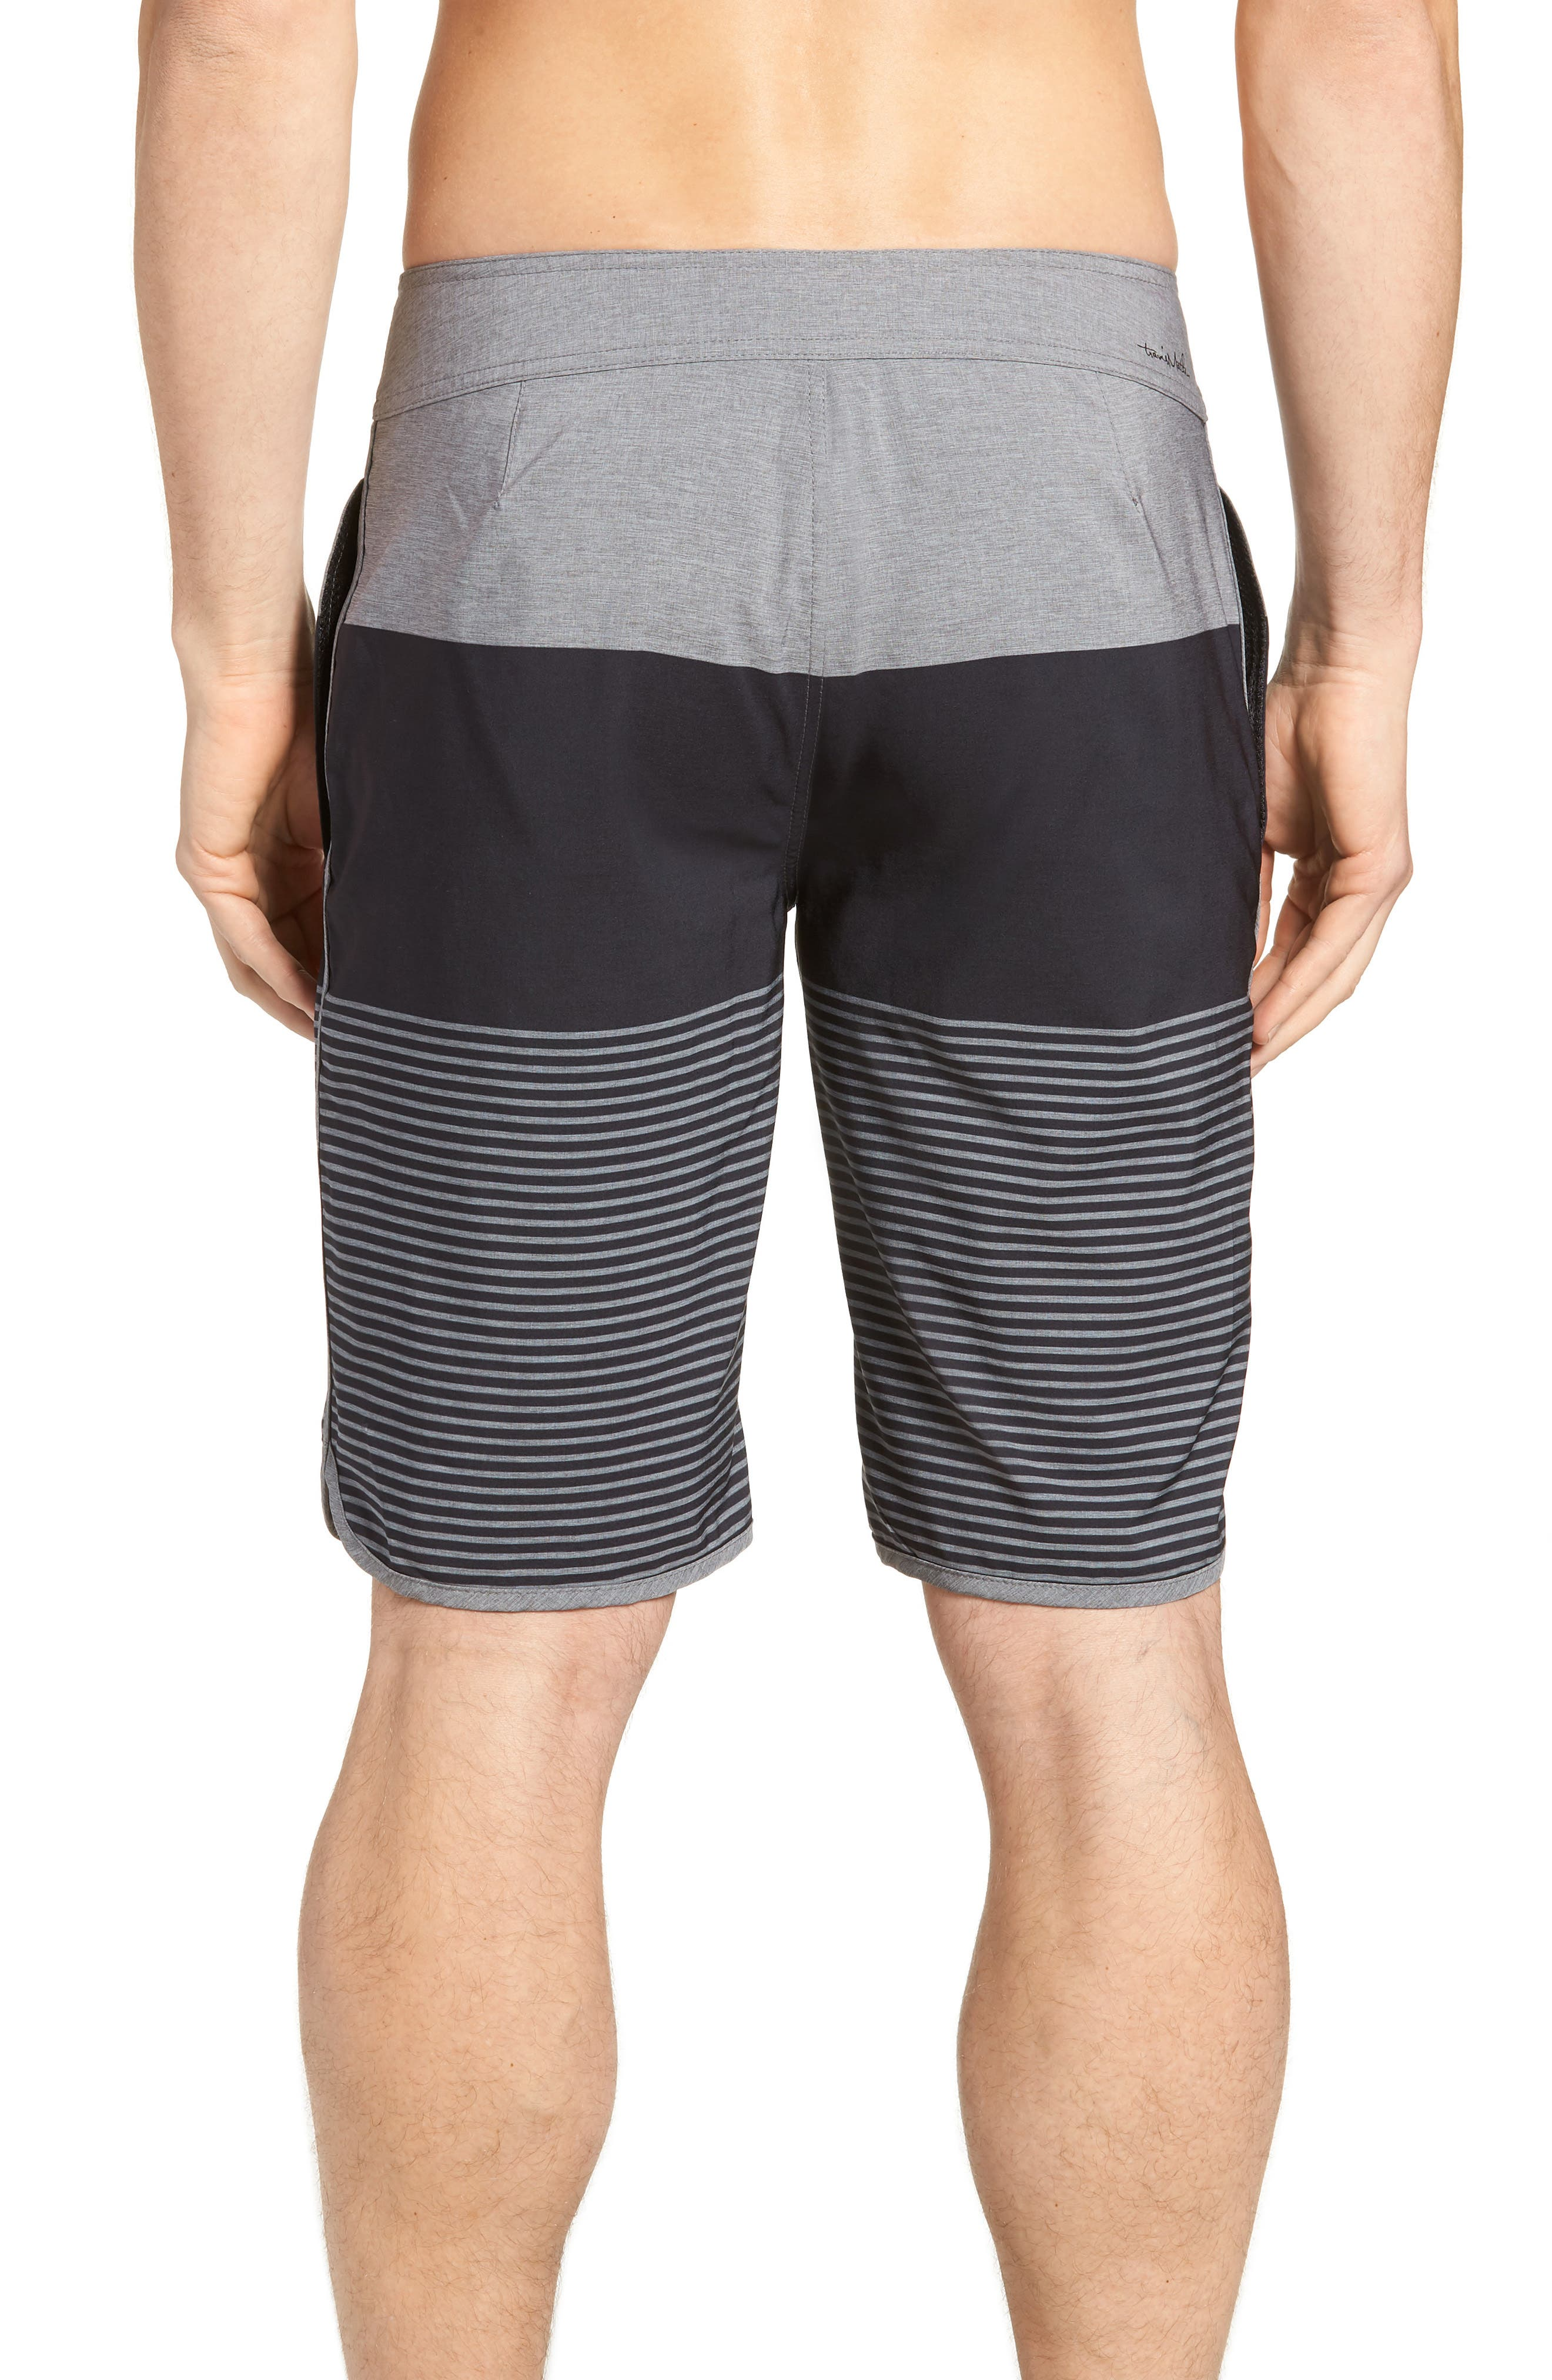 Claim It Regular Fit Board Shorts,                             Alternate thumbnail 2, color,                             Heather Black